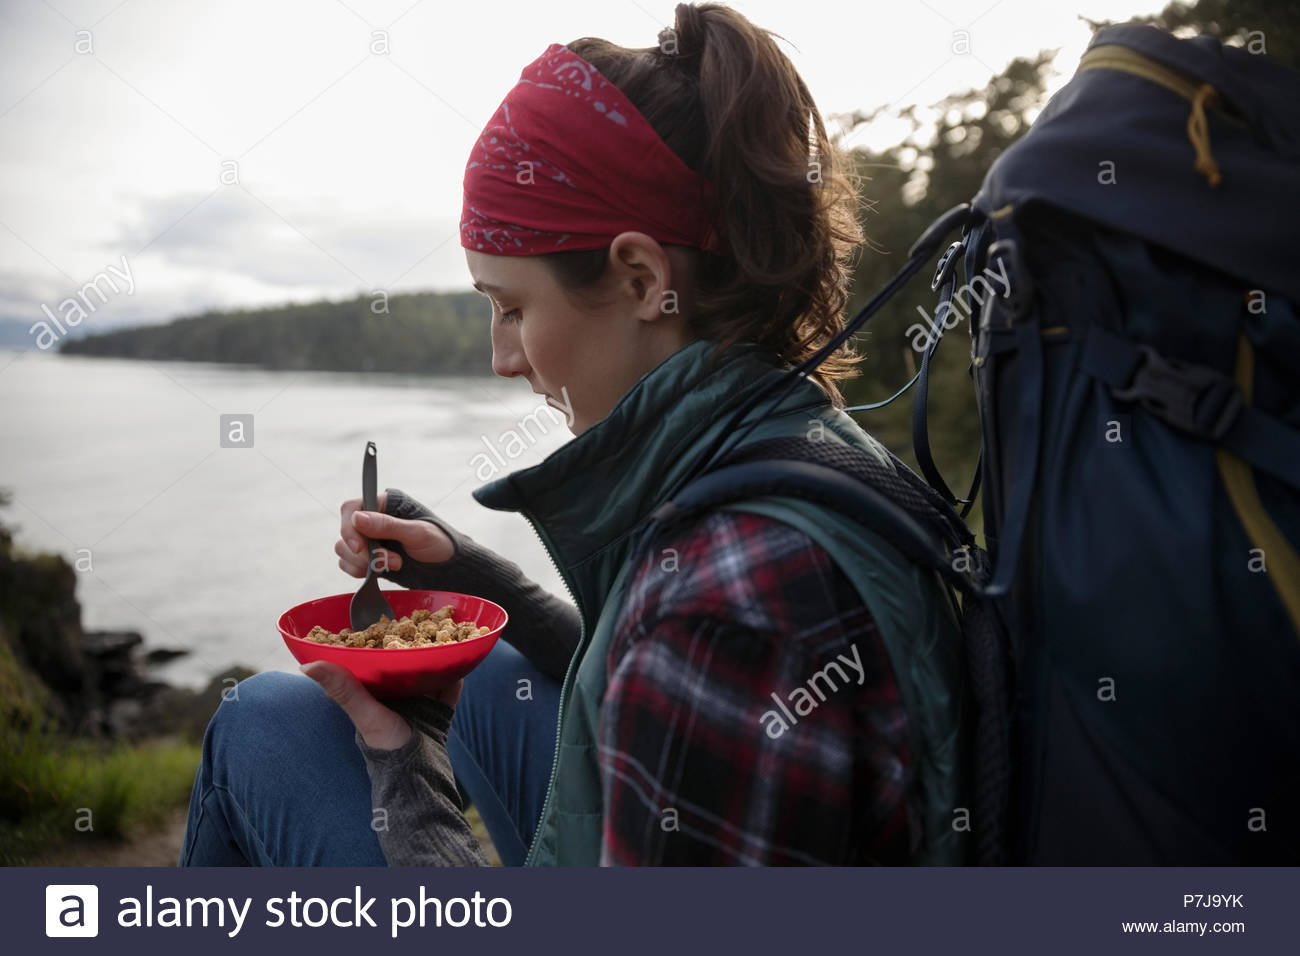 Female backpacker eating cereal on cliff overlooking ocean - Stock Image